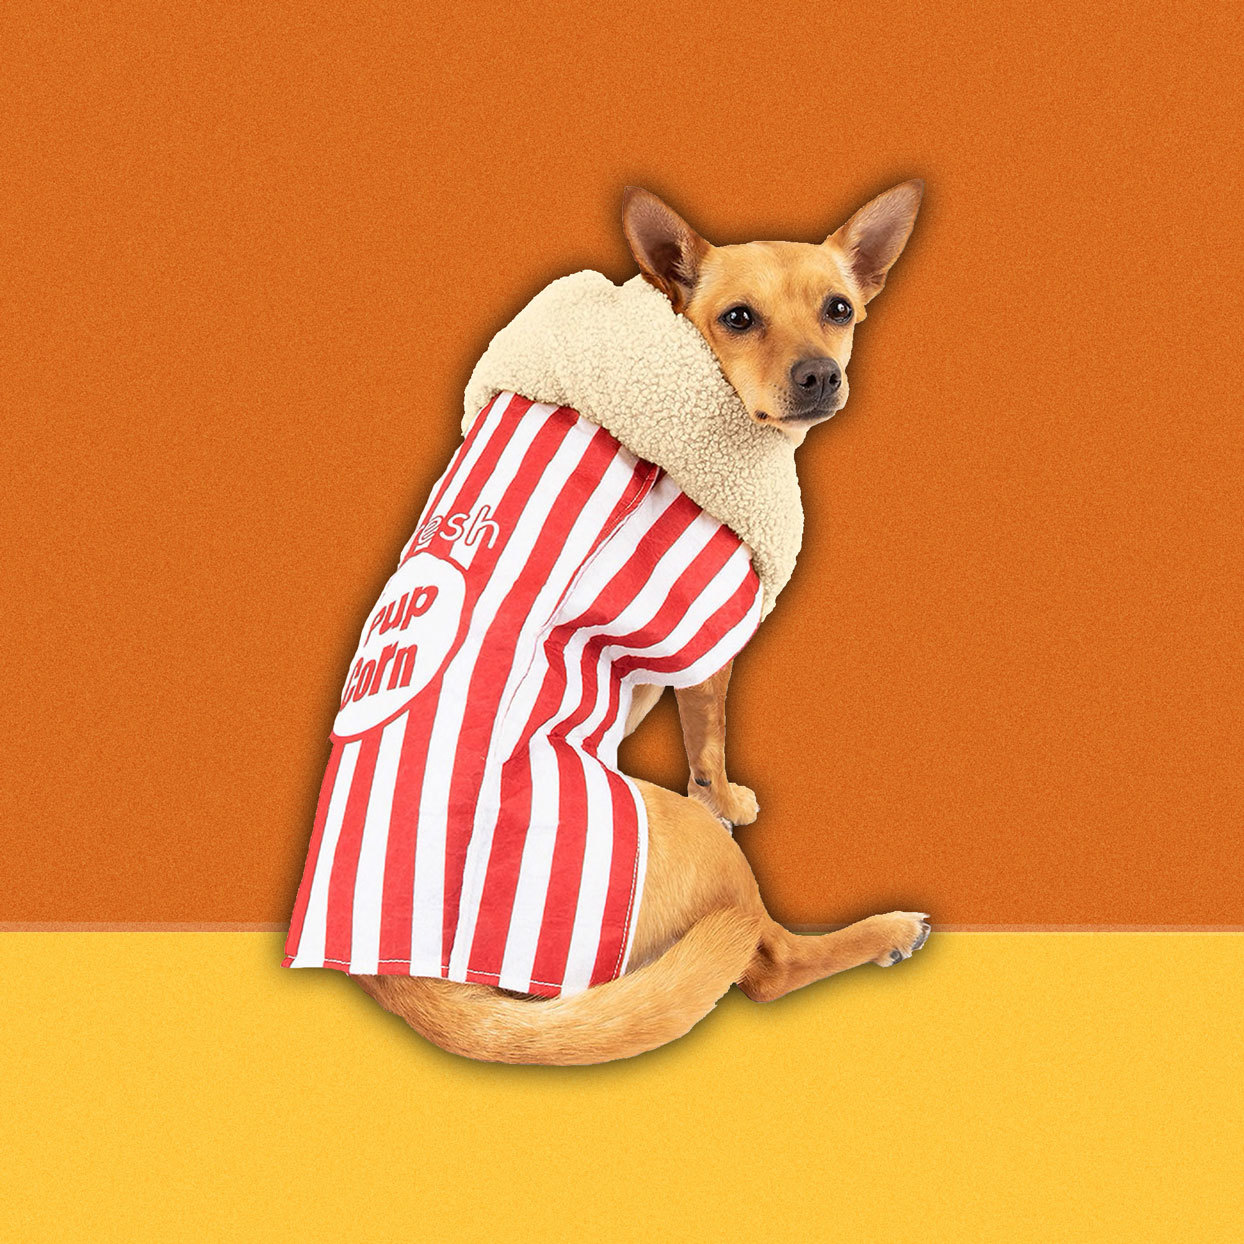 dog in popcorn box costume